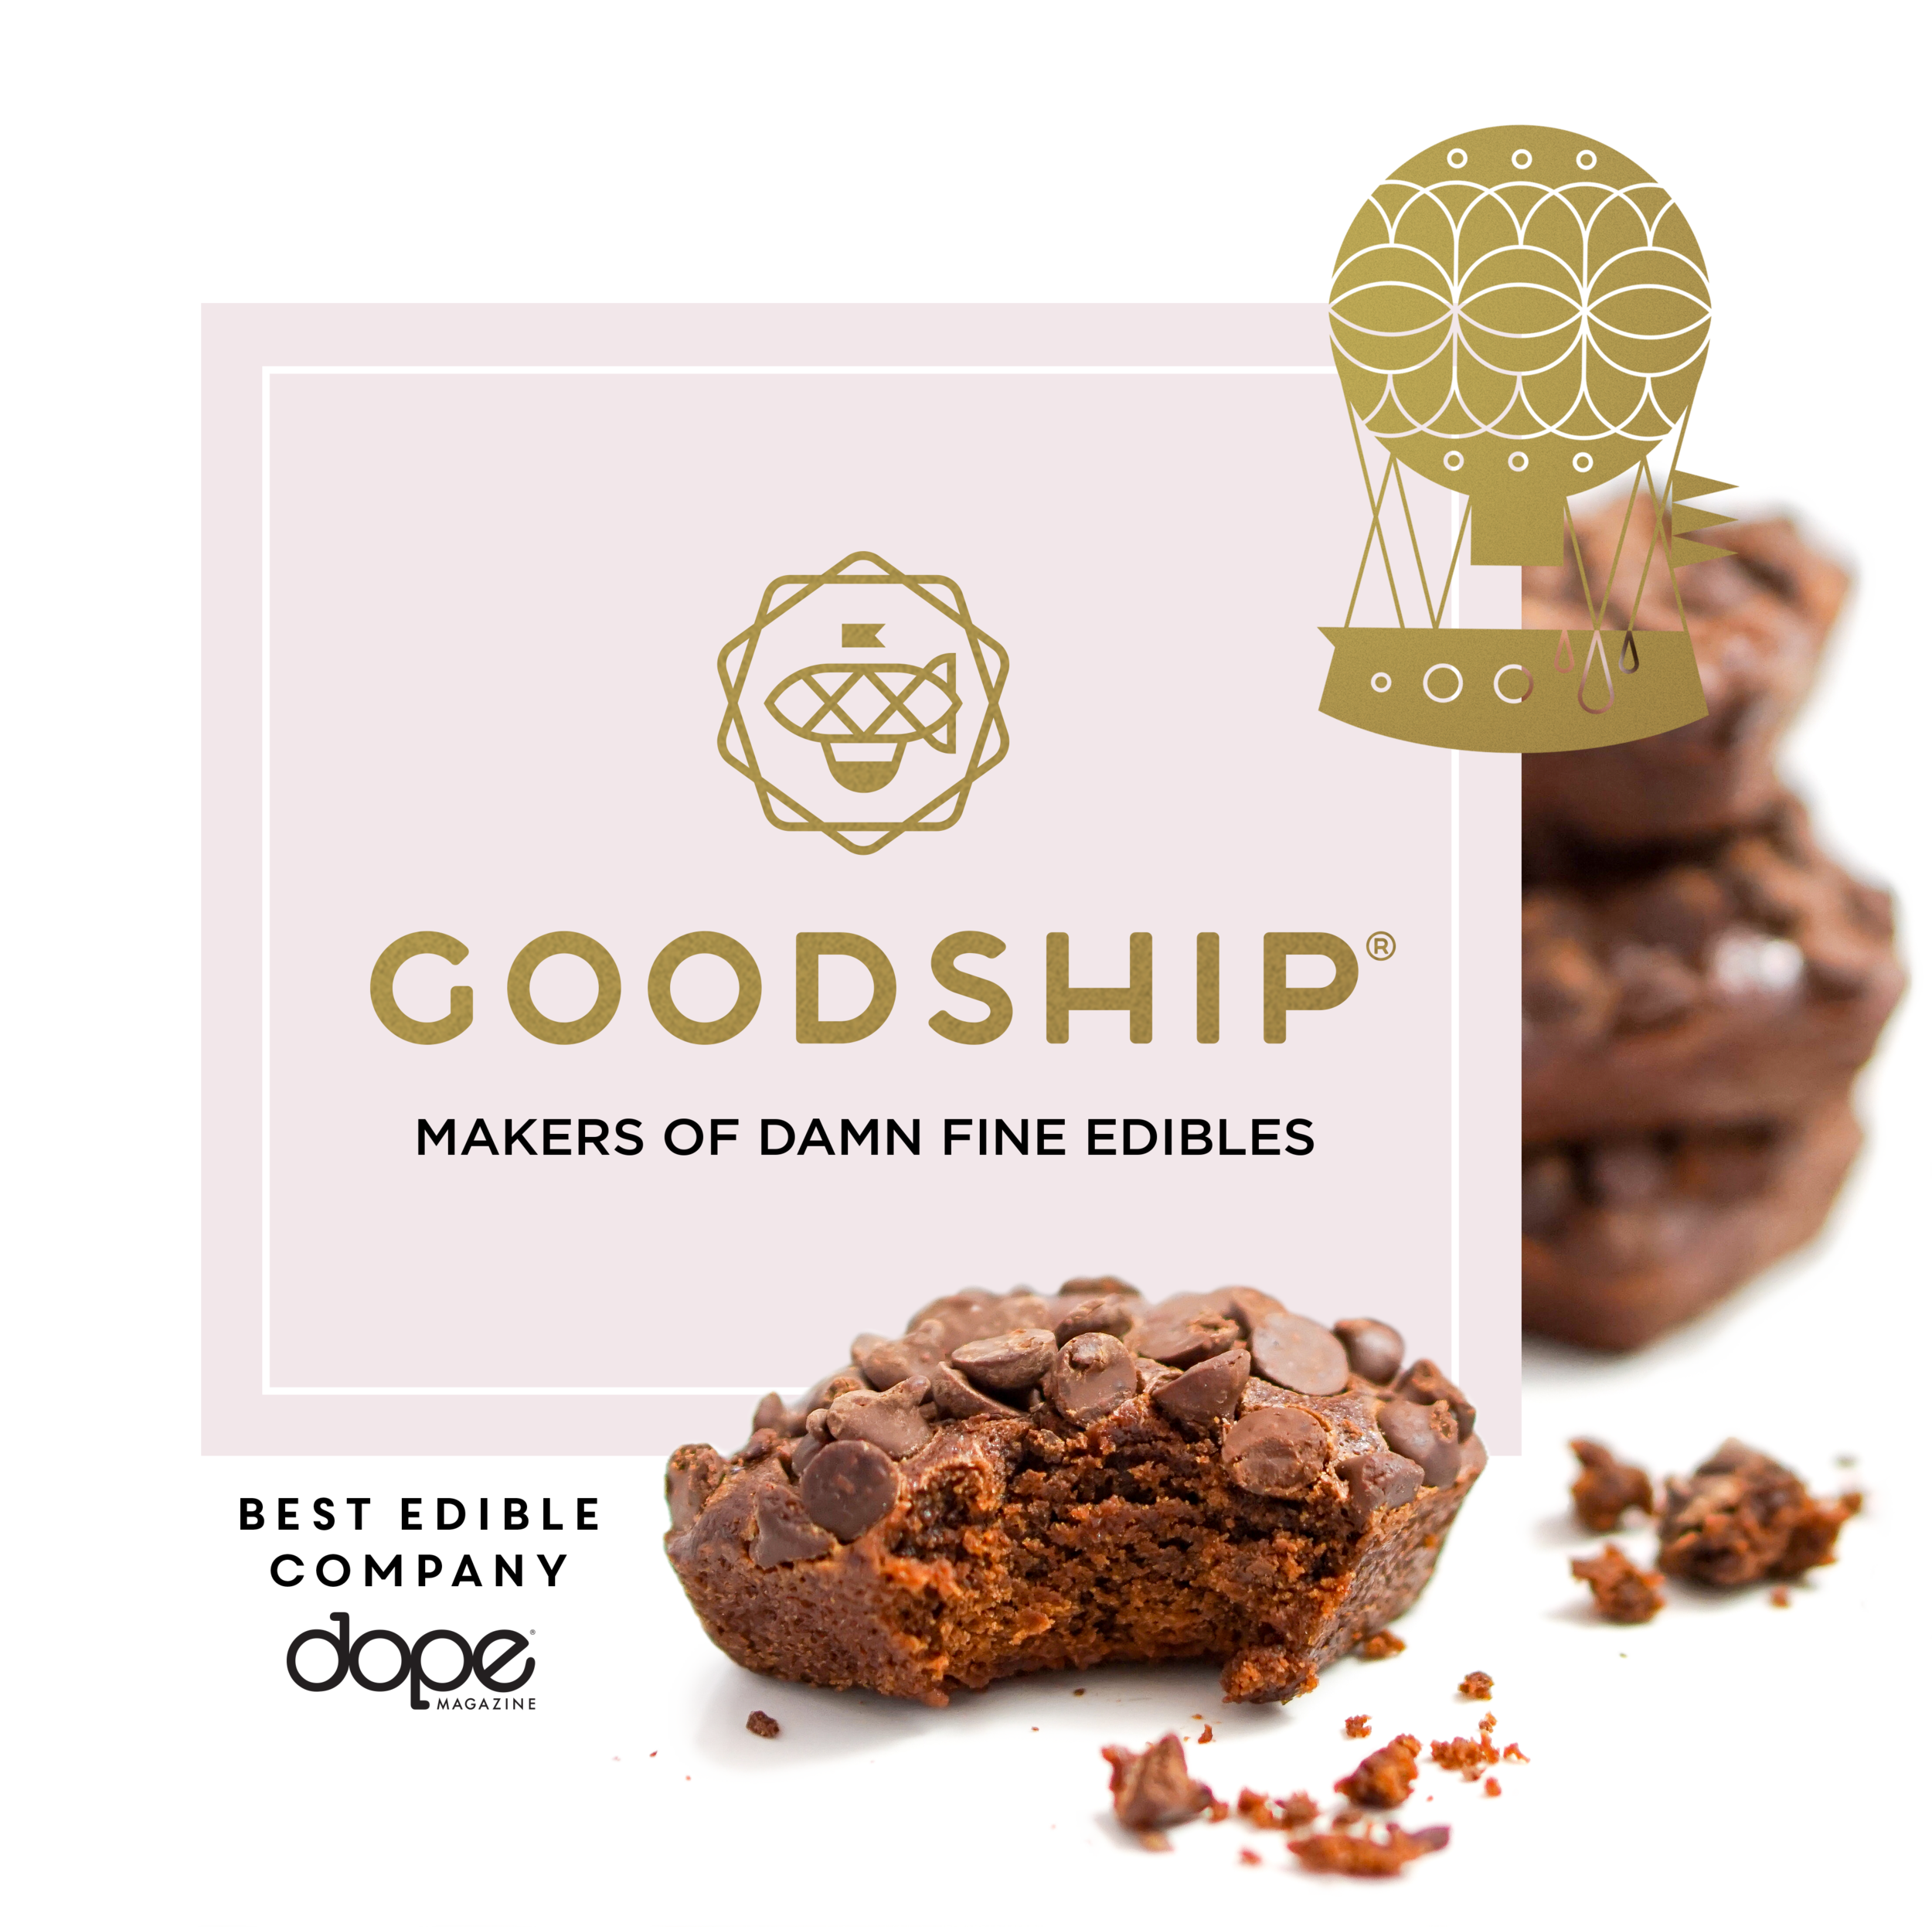 Goodship - The Goodship™ invites you to come aboard. Founded in 2014 by Jody Hall, the owner of Seattle's most celebrated collection of cupcake bakeries and cafés, Cupcake Royale, The Goodship brings decades of experience to their stellar baked goods, chocolates and confections. Their delectable products and community presence have made them one of the West Coast's most loved cannabis brands. More than just